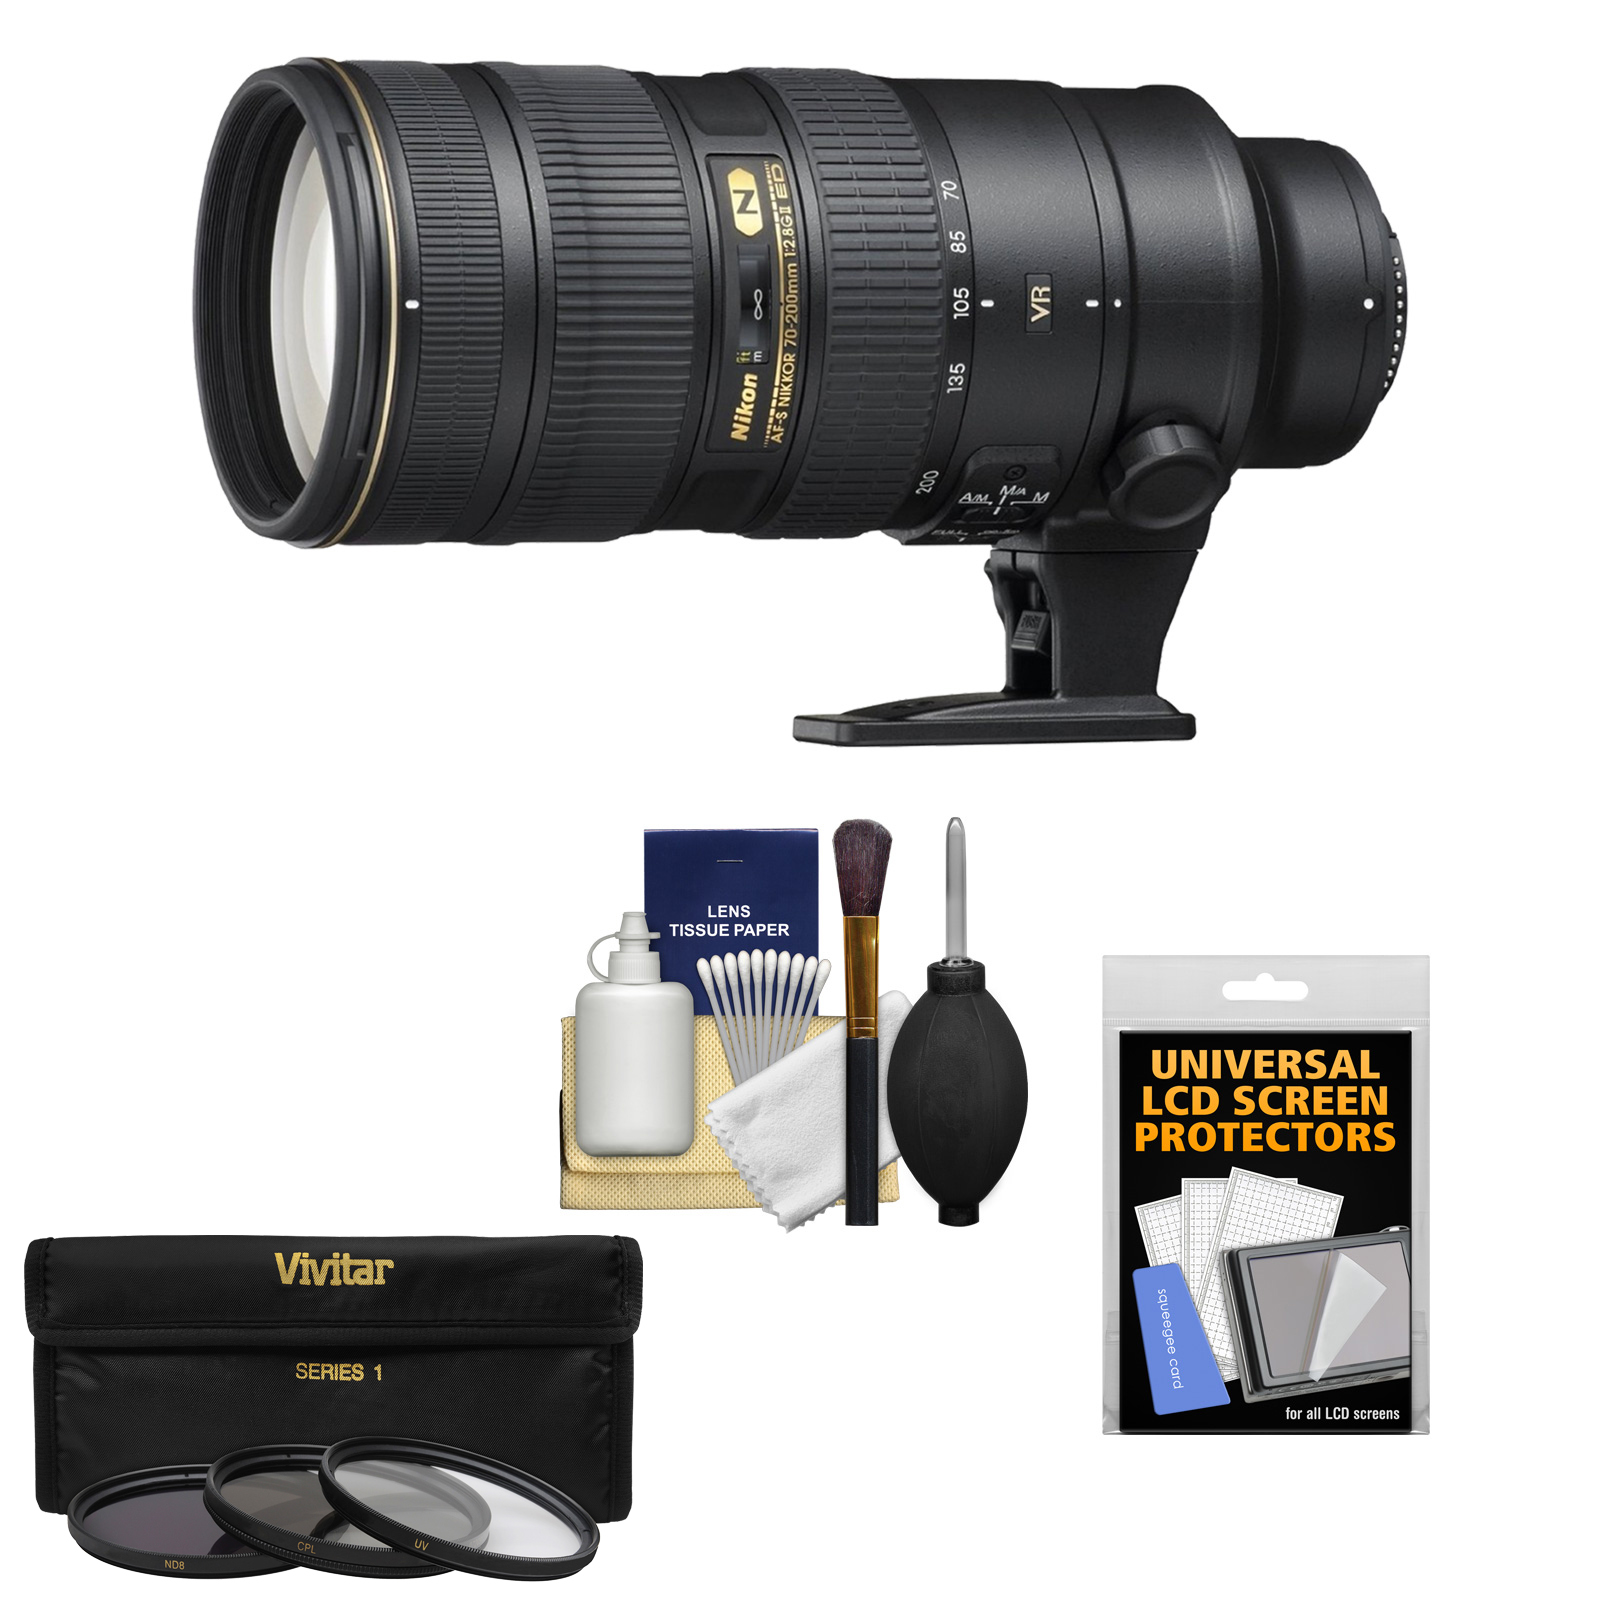 Nikon 70-200mm f/2.8G VR II AF-S ED-IF Zoom-Nikkor Lens - Factory Refurbished with 3 UV/CPL/ND8 Filters + Accessory Kit